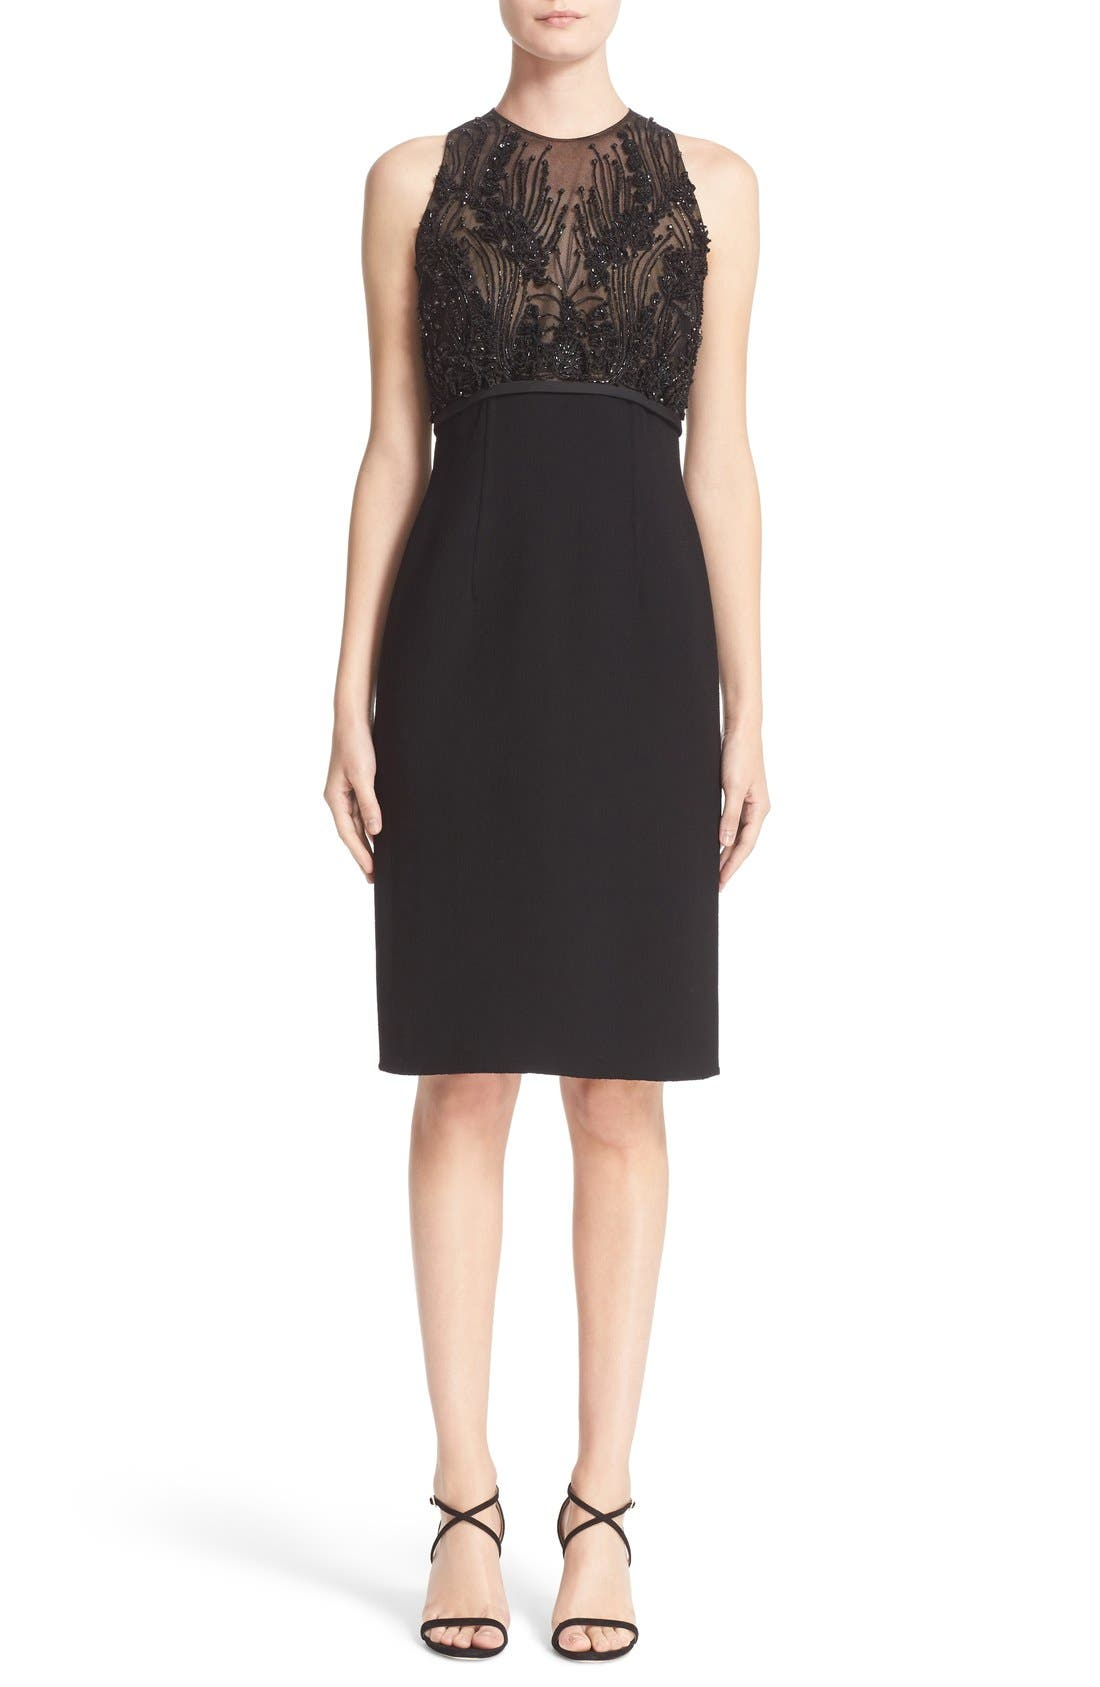 CARMEN MARC VALVO COUTURE Embellished Bodice Sleeveless Cocktail Dress